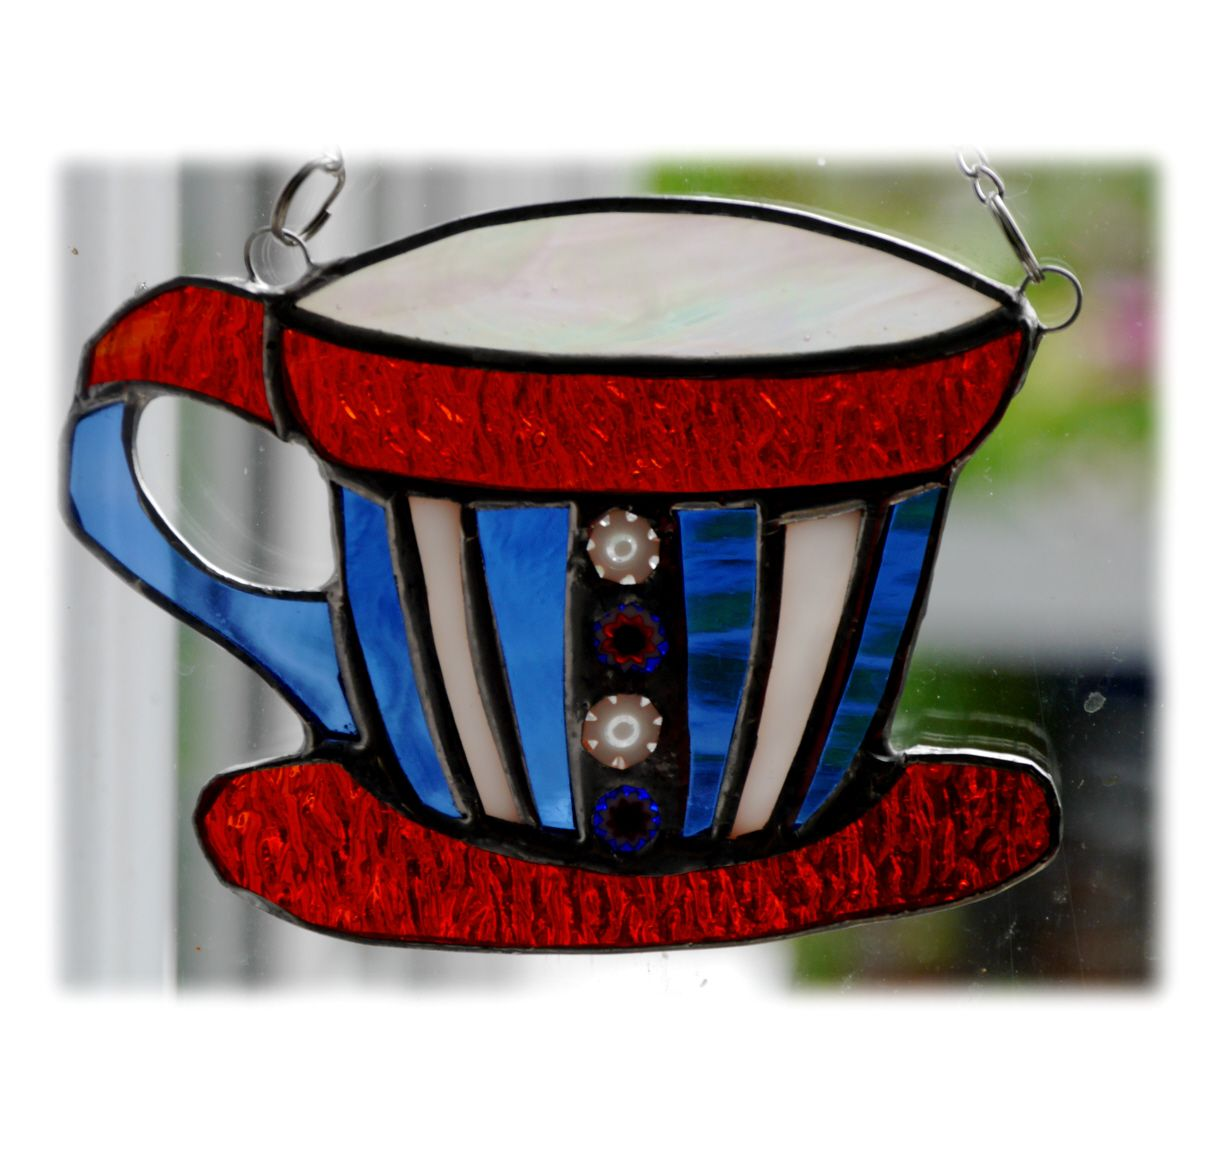 Teacup 009 5x4 Red white blue FREE @17.50